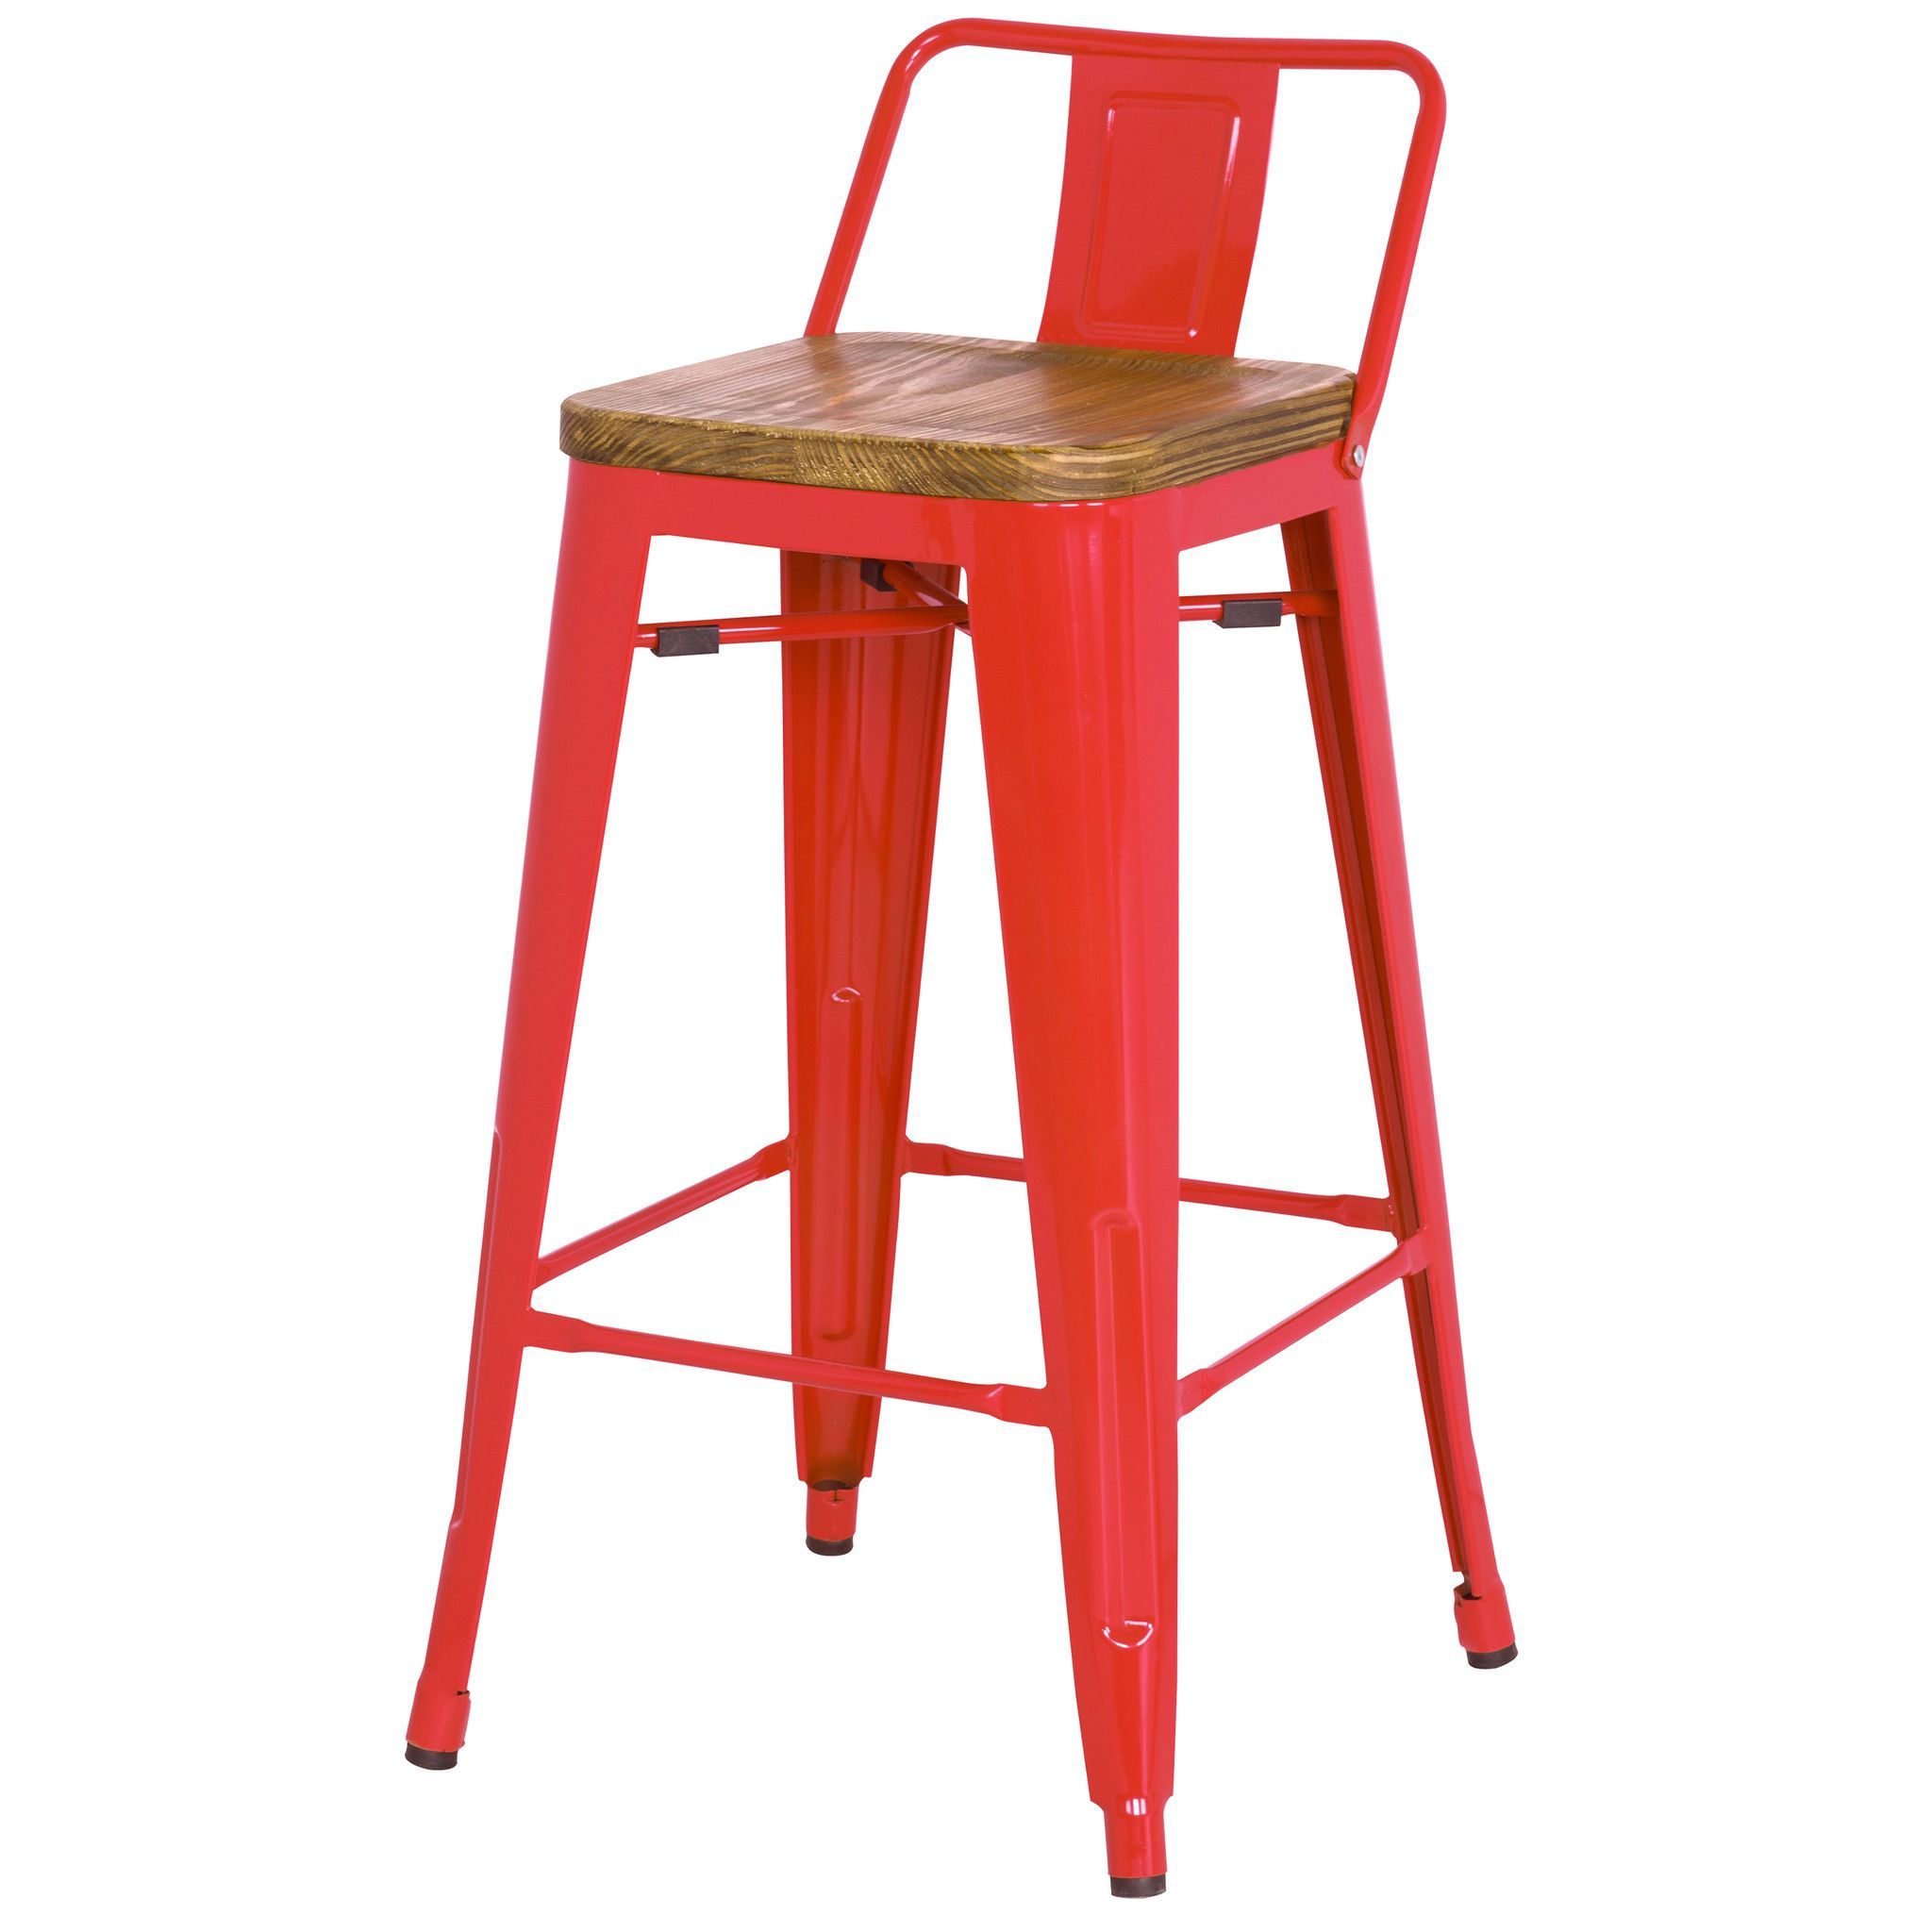 24 High Tolix Counter Height Stool With Back And Wood Seat Bar Stools Metal Counter Stools Counter Stools